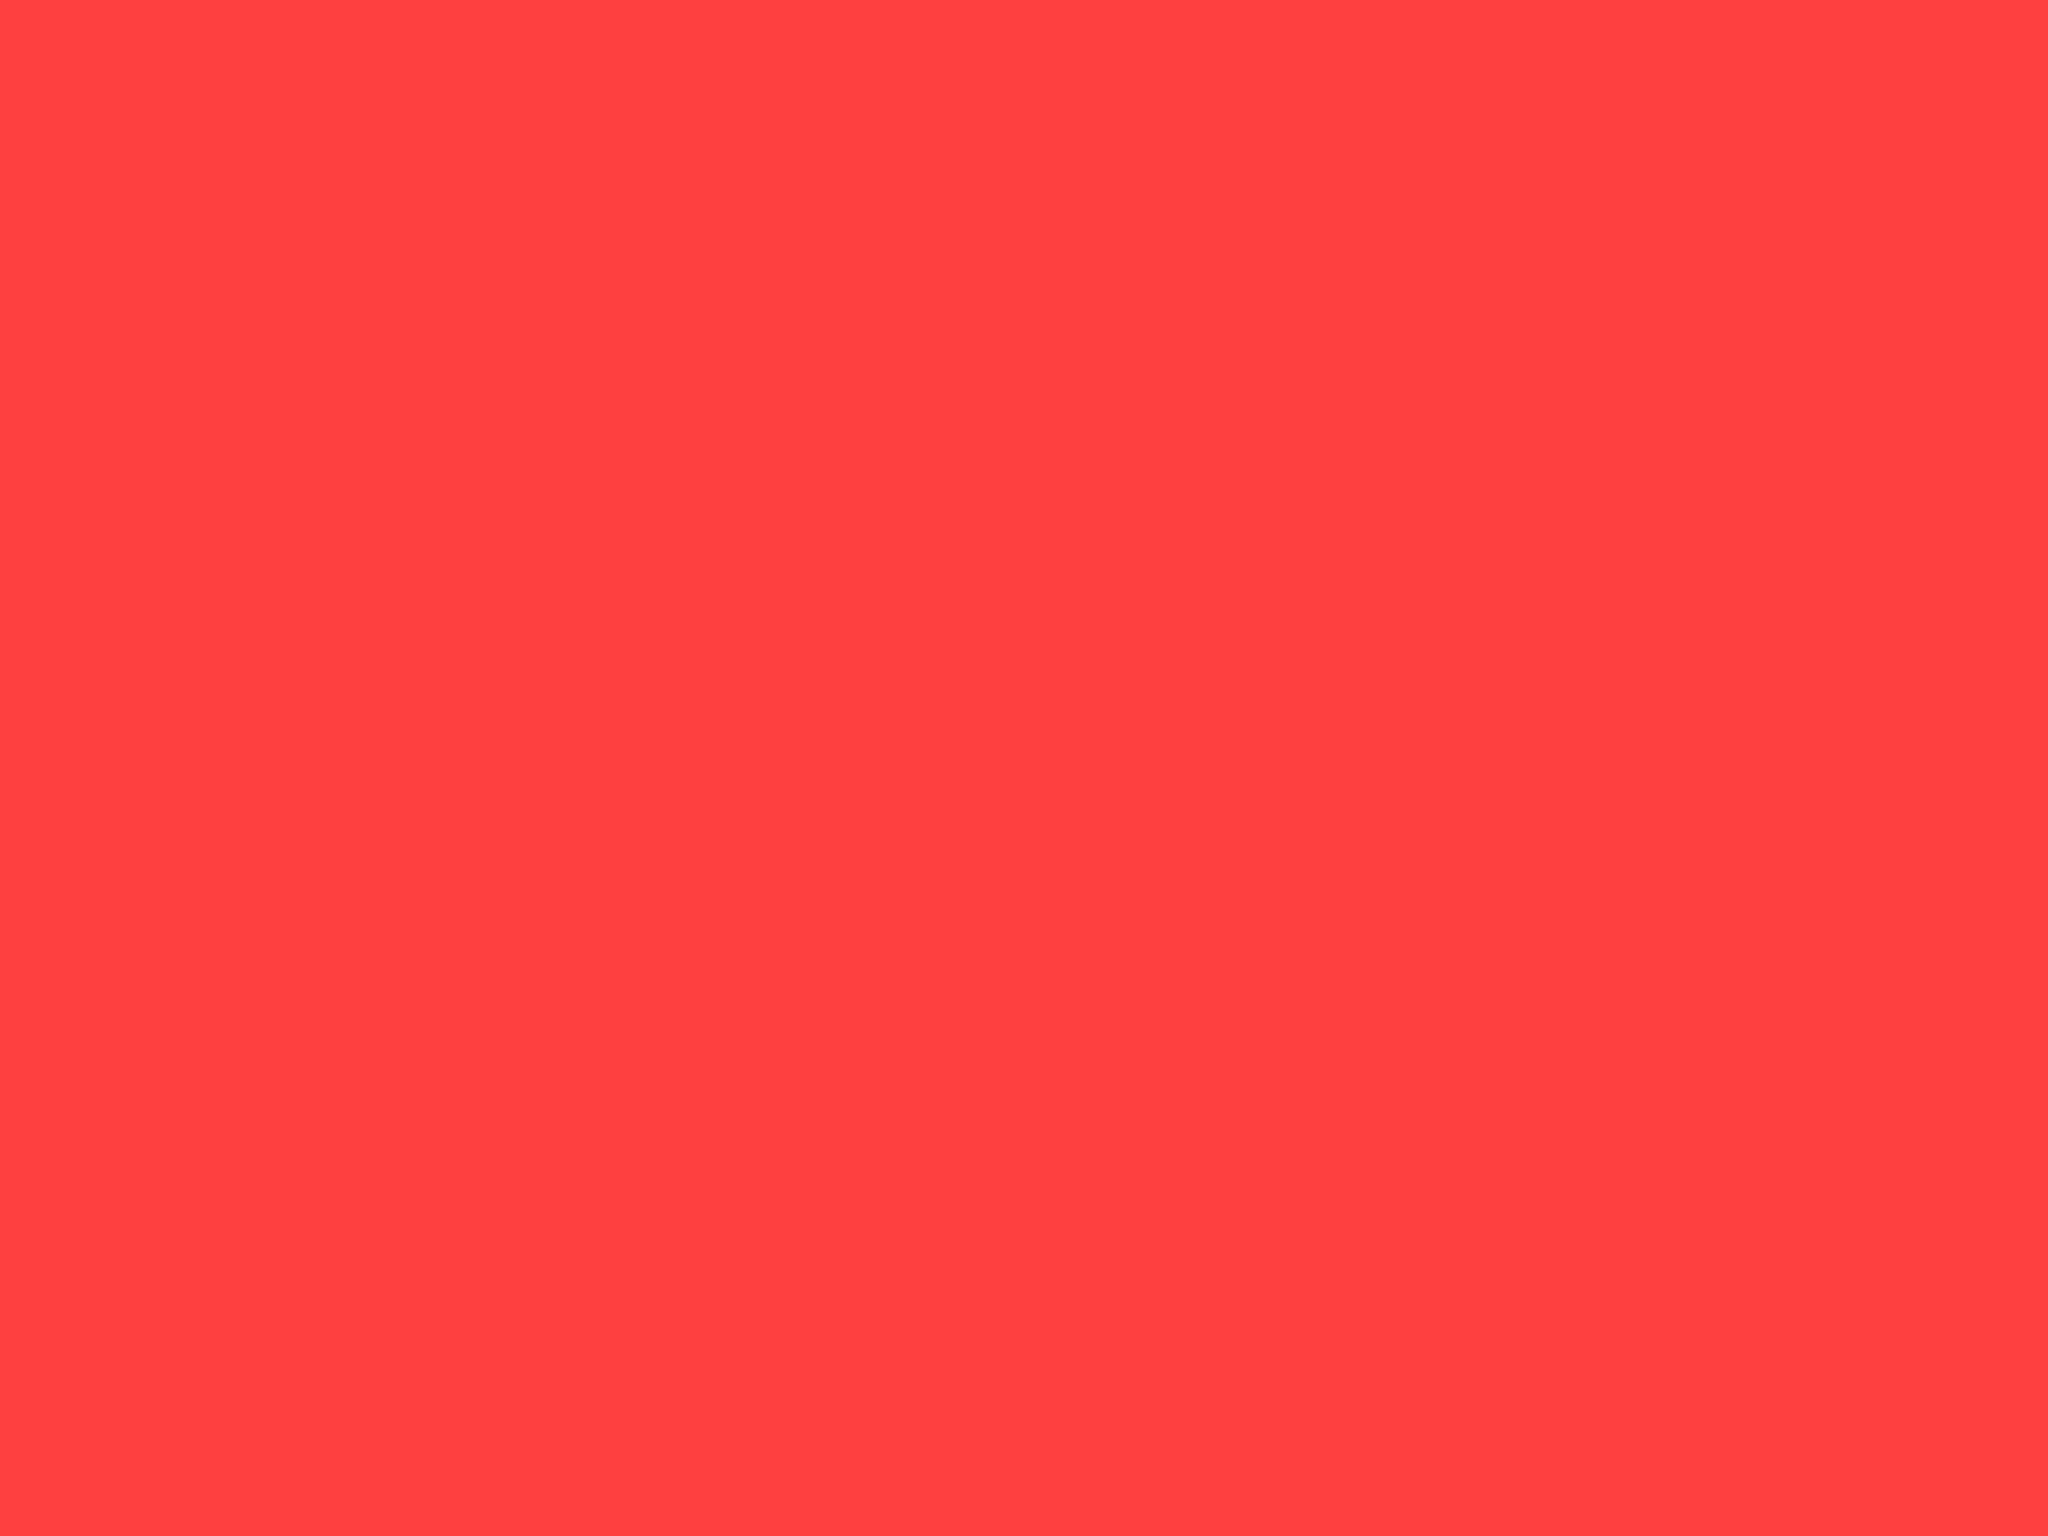 2048x1536 Coral Red Solid Color Background